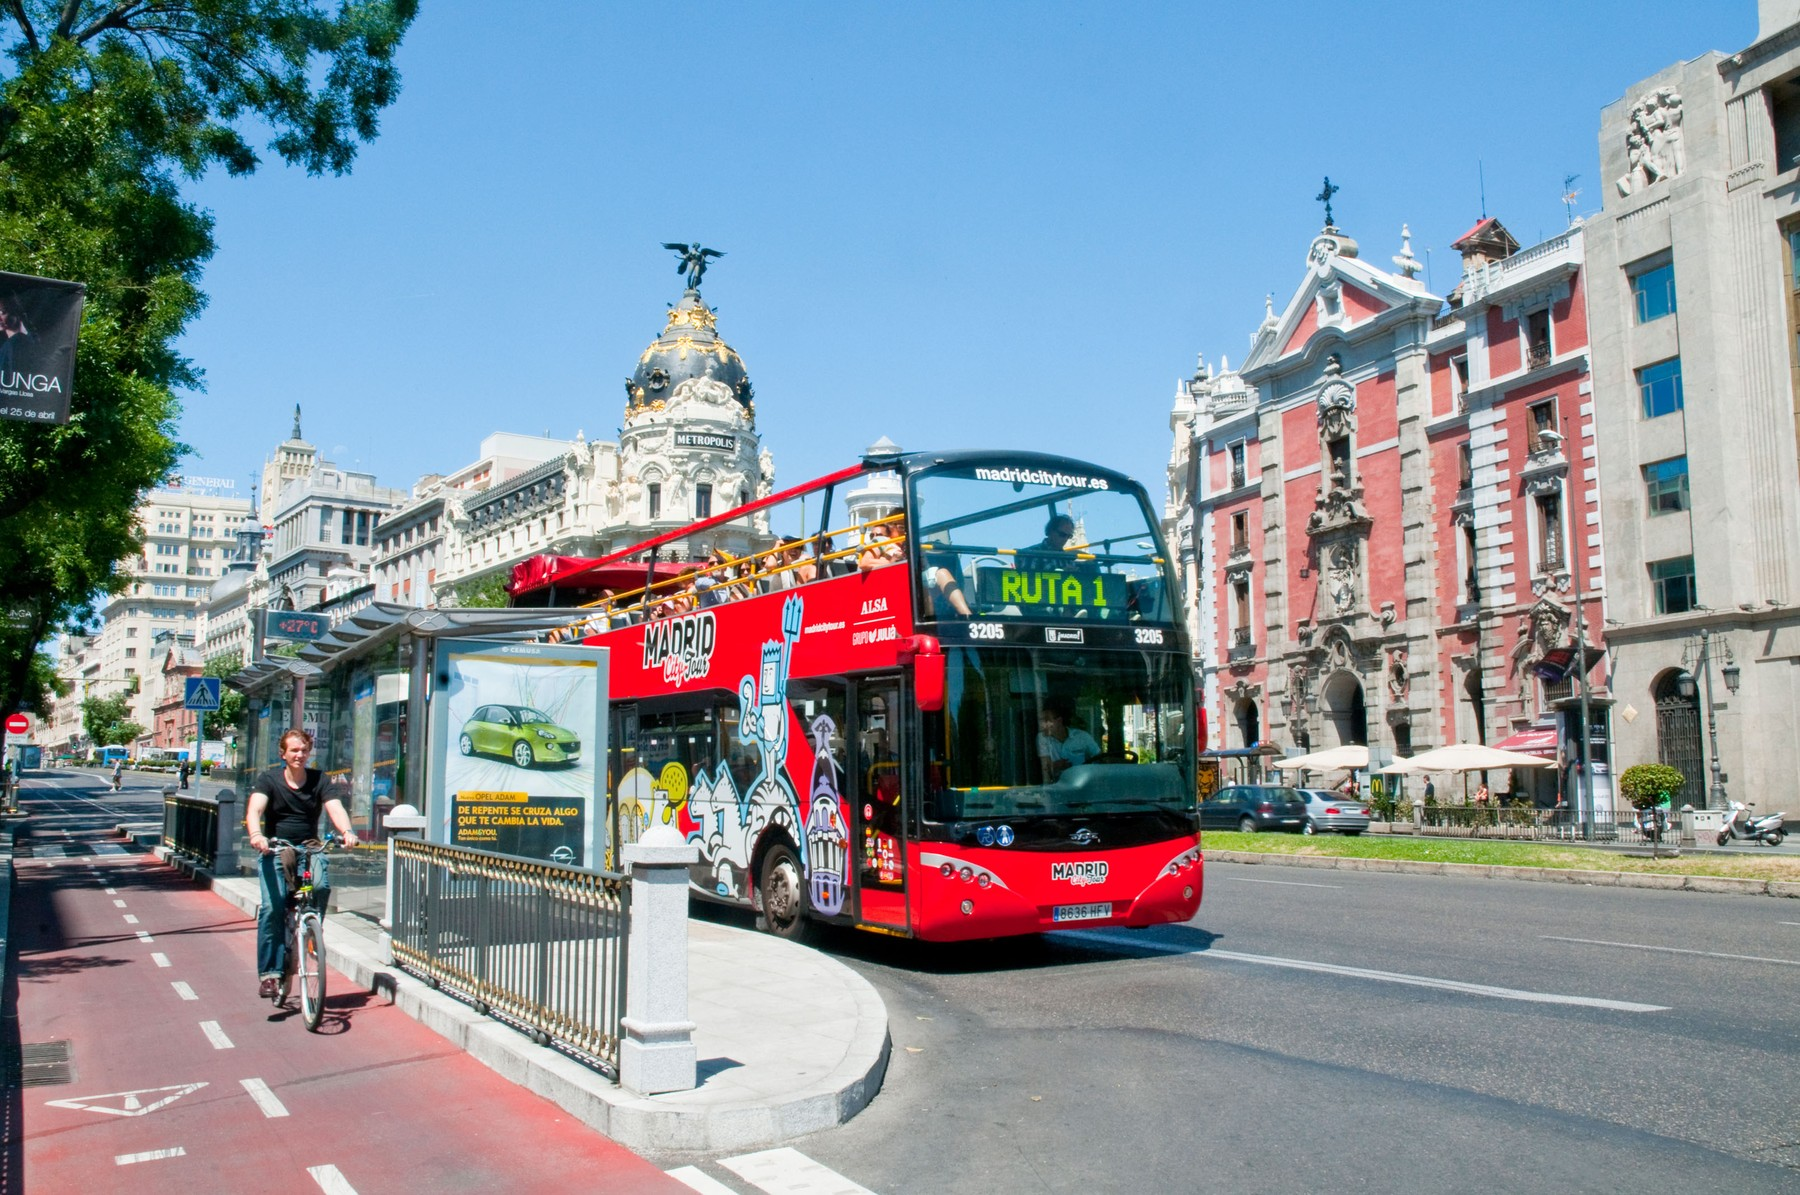 Tourist bus and cycle lane in Alcala street. Madrid, Spain.